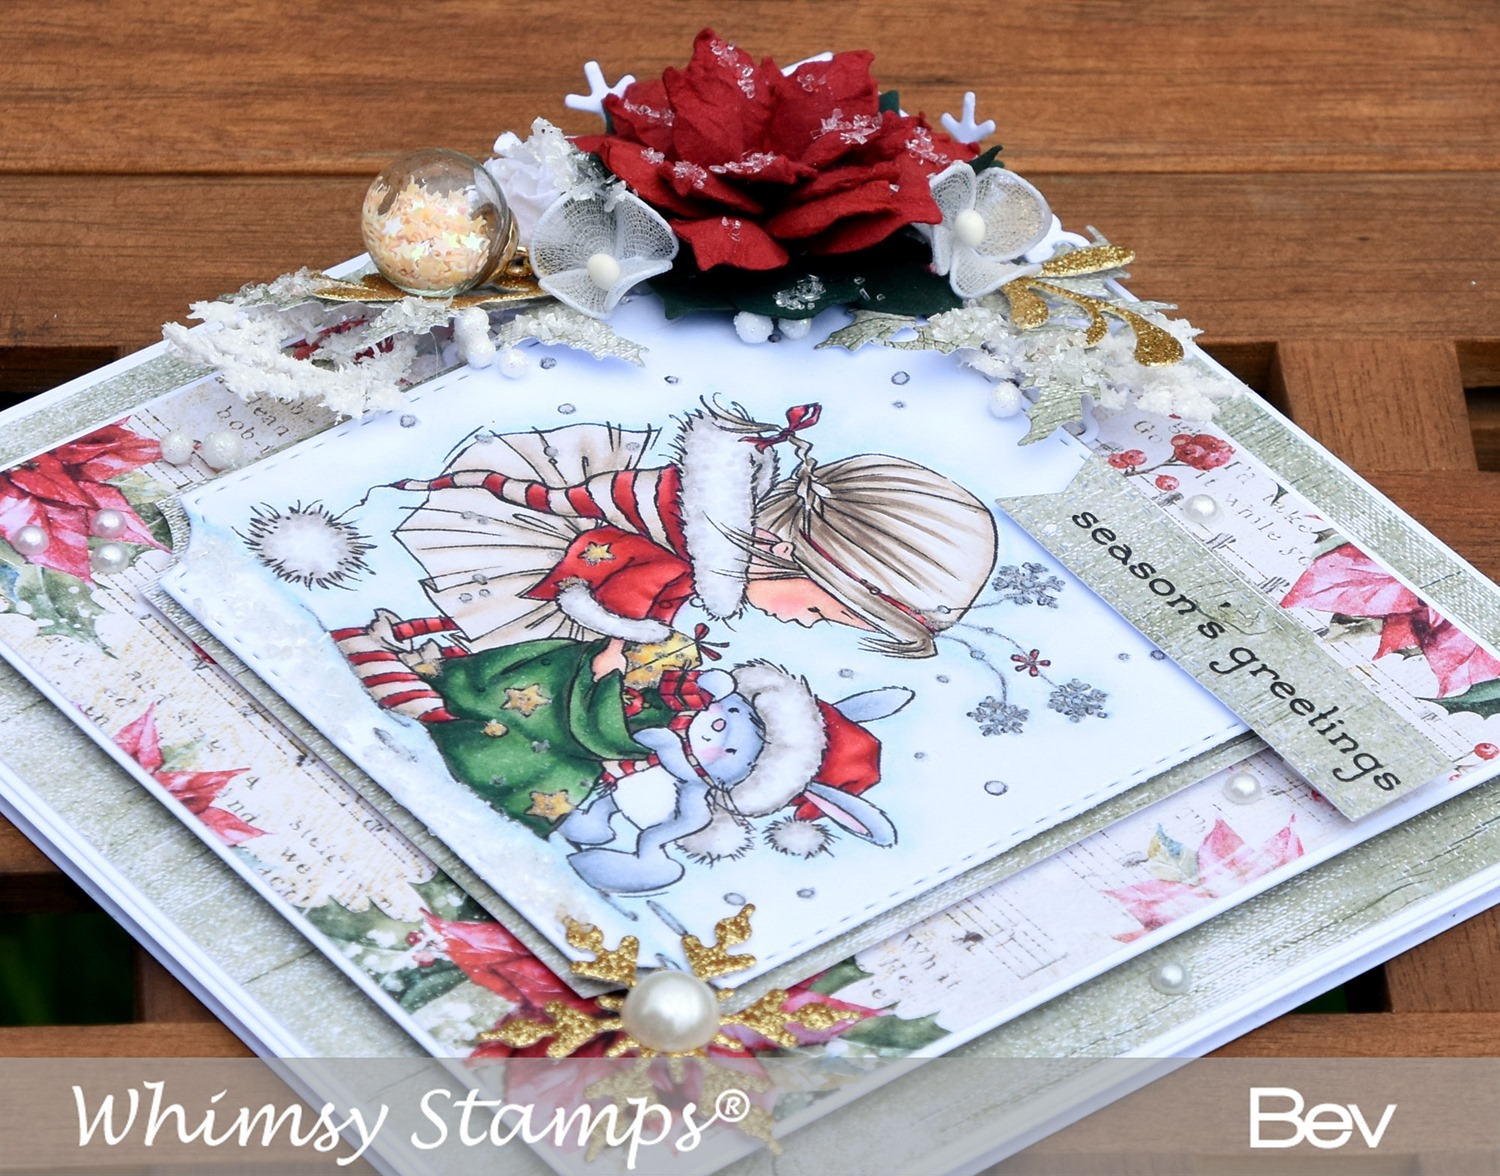 [bev-rochester-whimsy-stamps-santa%27s-helpers1%5B2%5D]